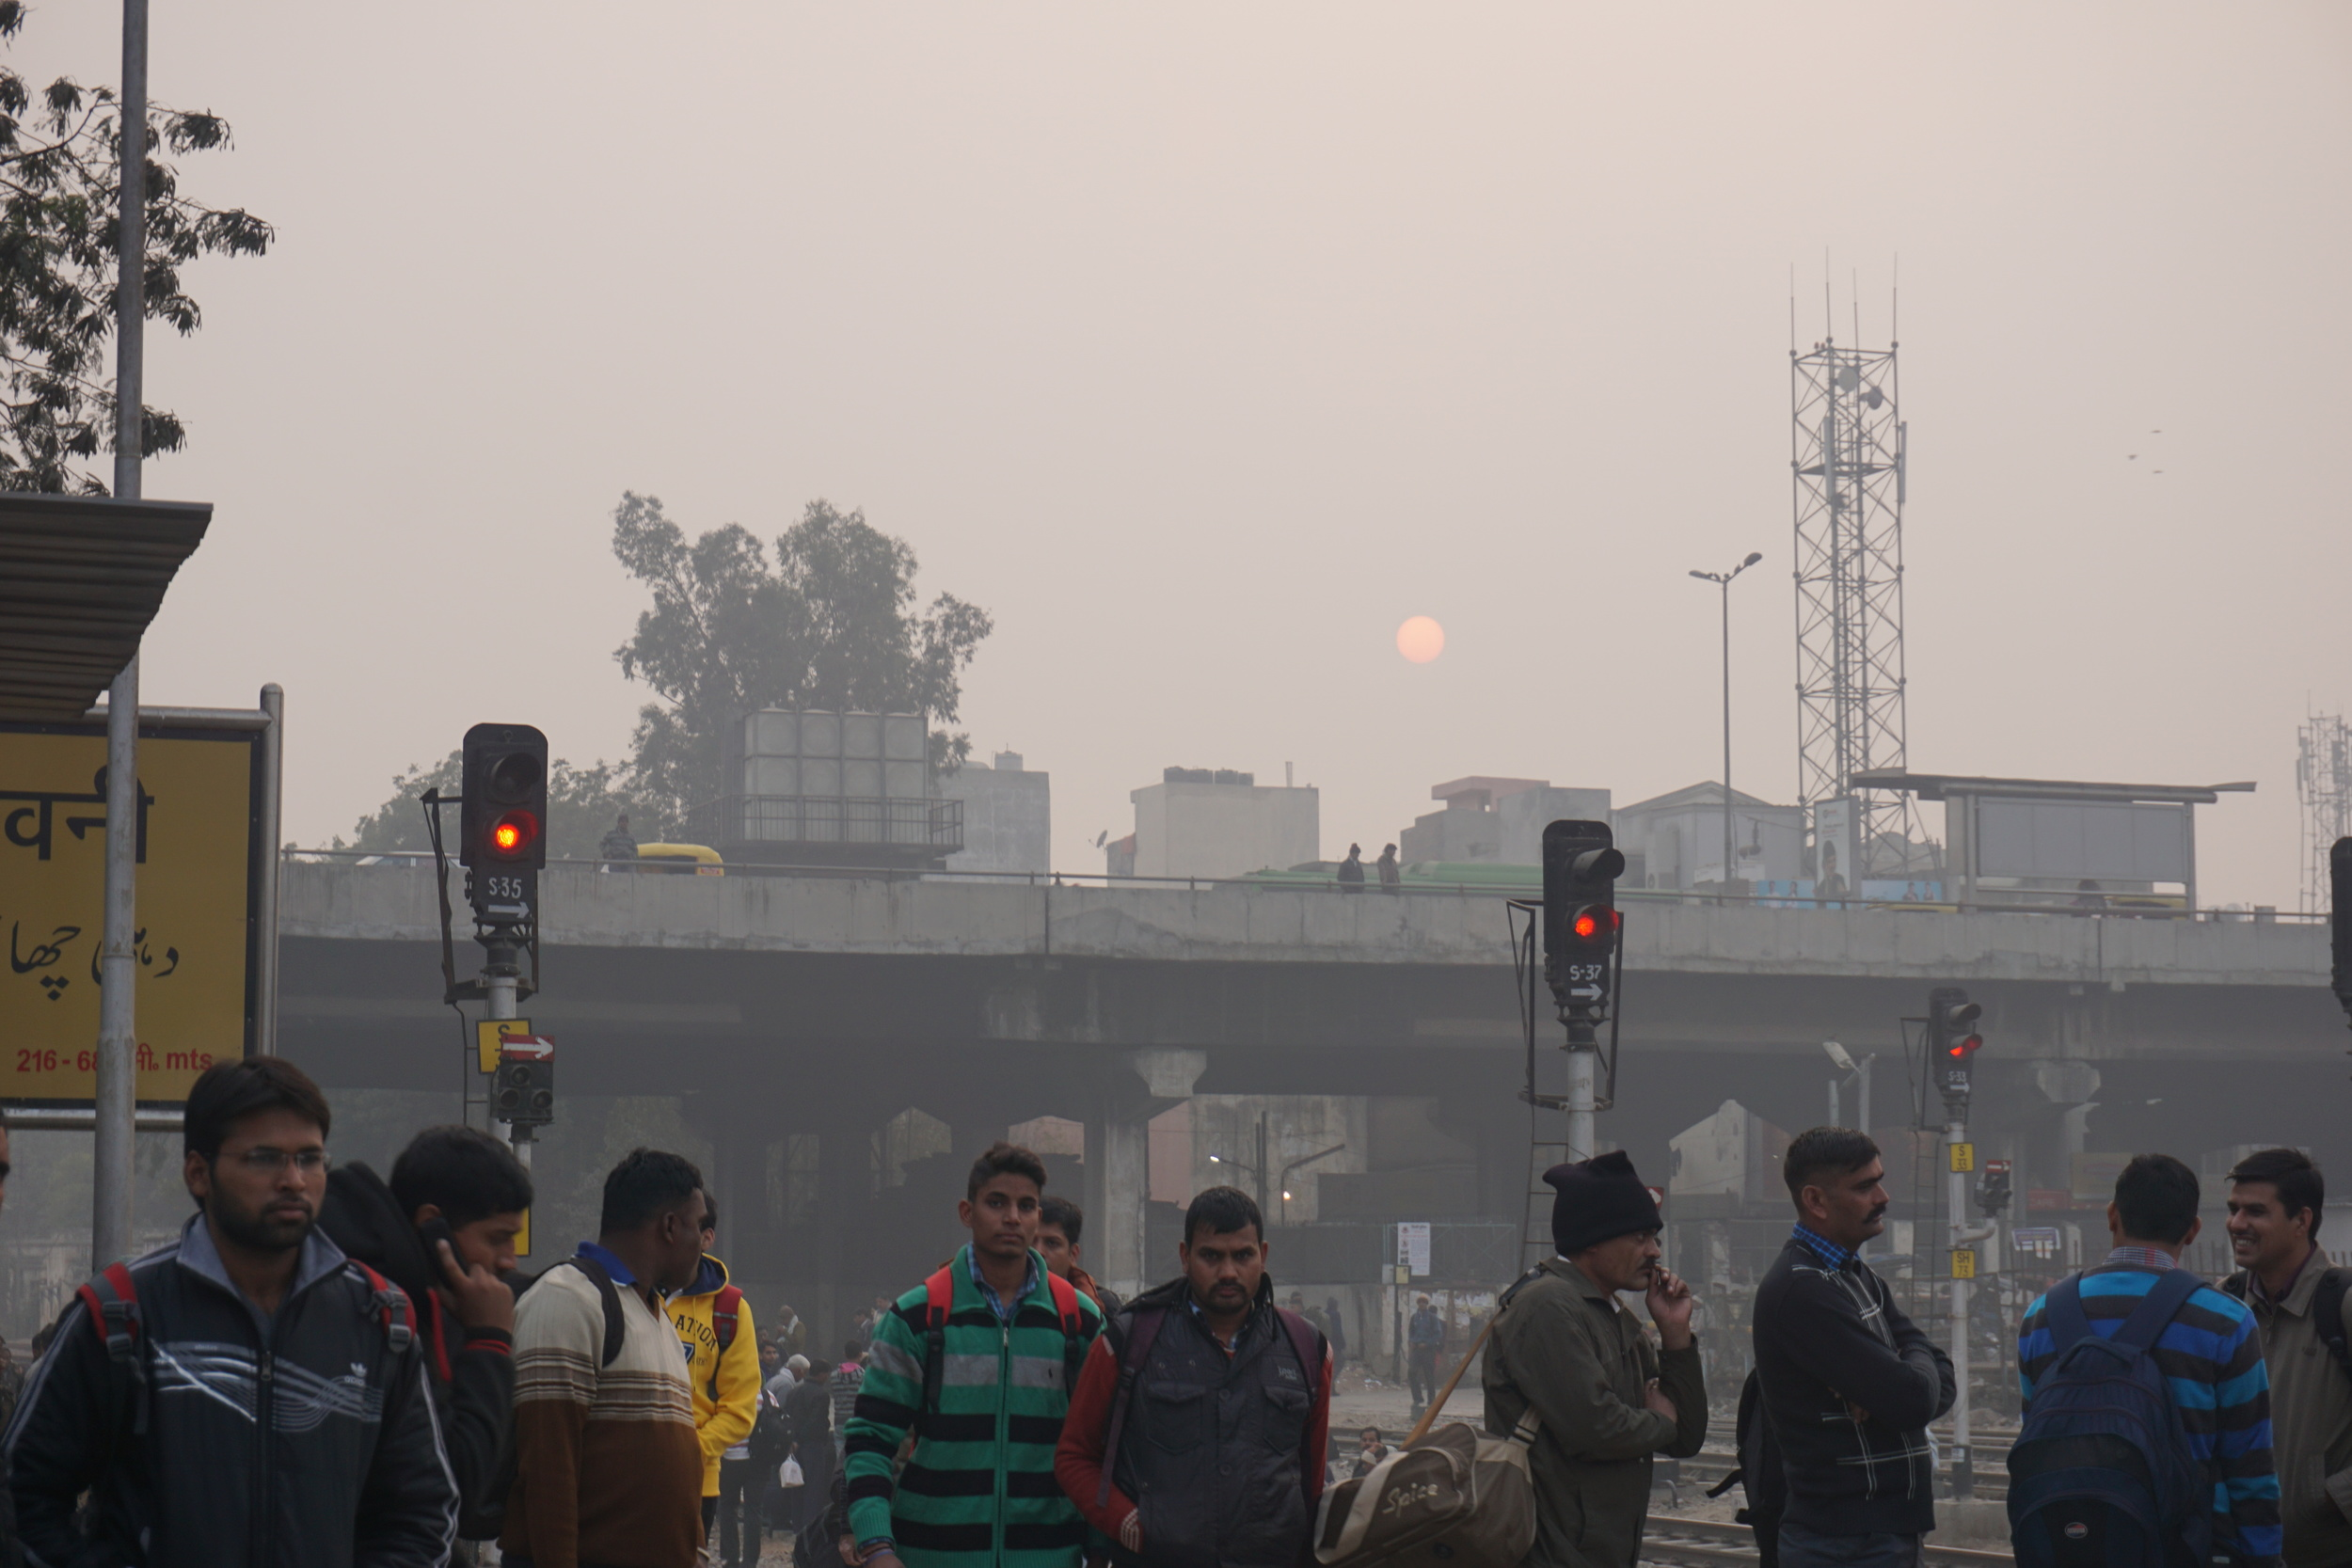 A hazy sunset behind Delhil's polluted skies.